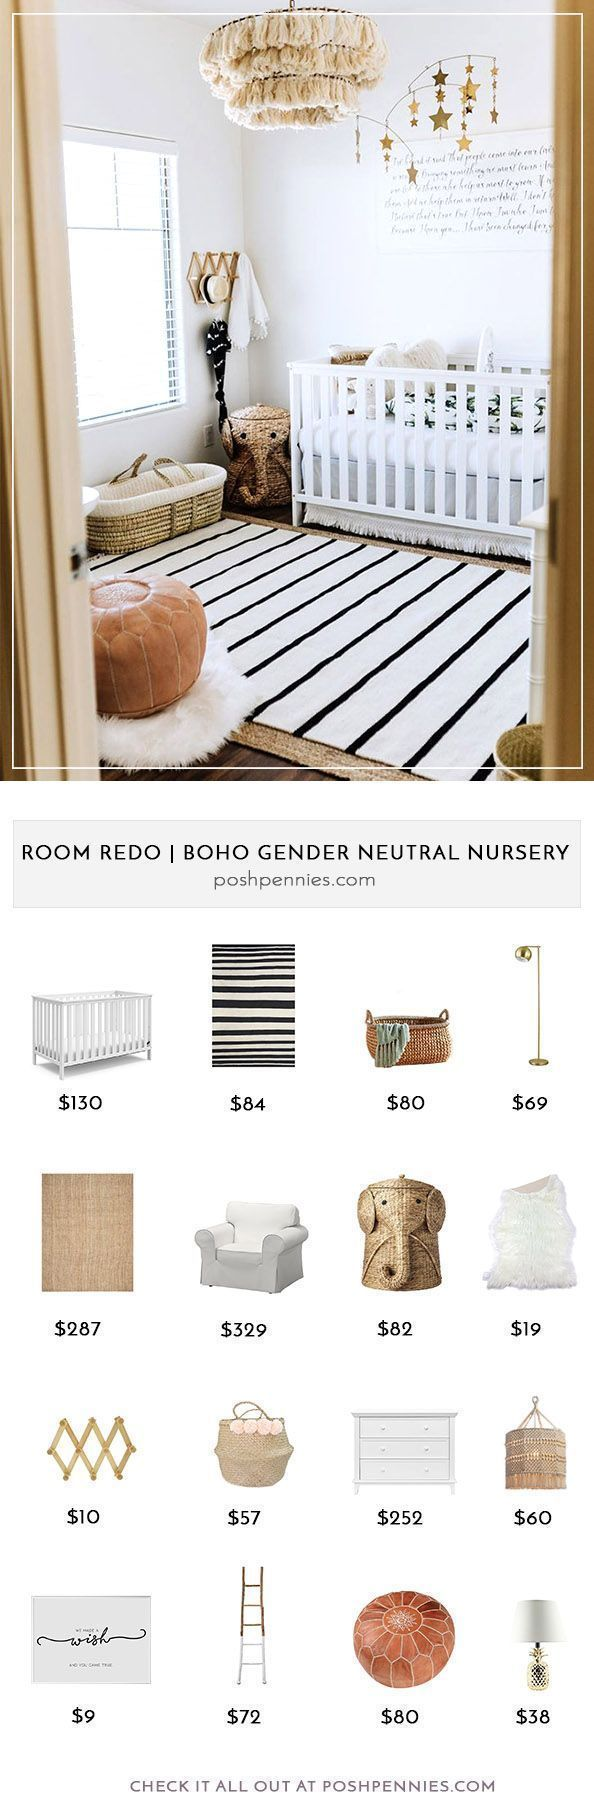 This is the nursery of my dreams! Its gender neutral, so you